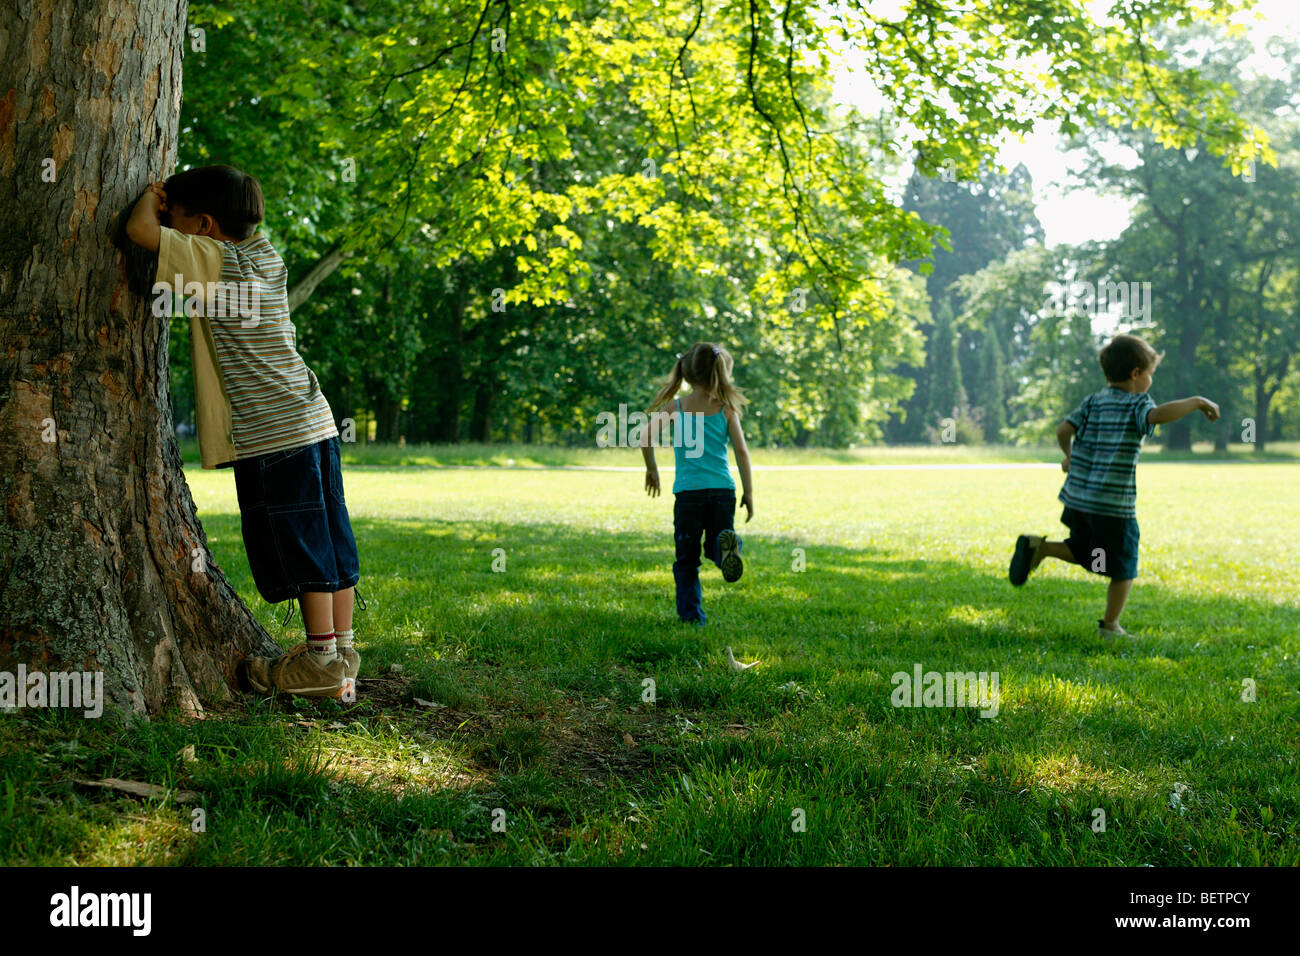 Hide And Seek Kids Three Children Playing Hide And Seek In The Park Stock Photo